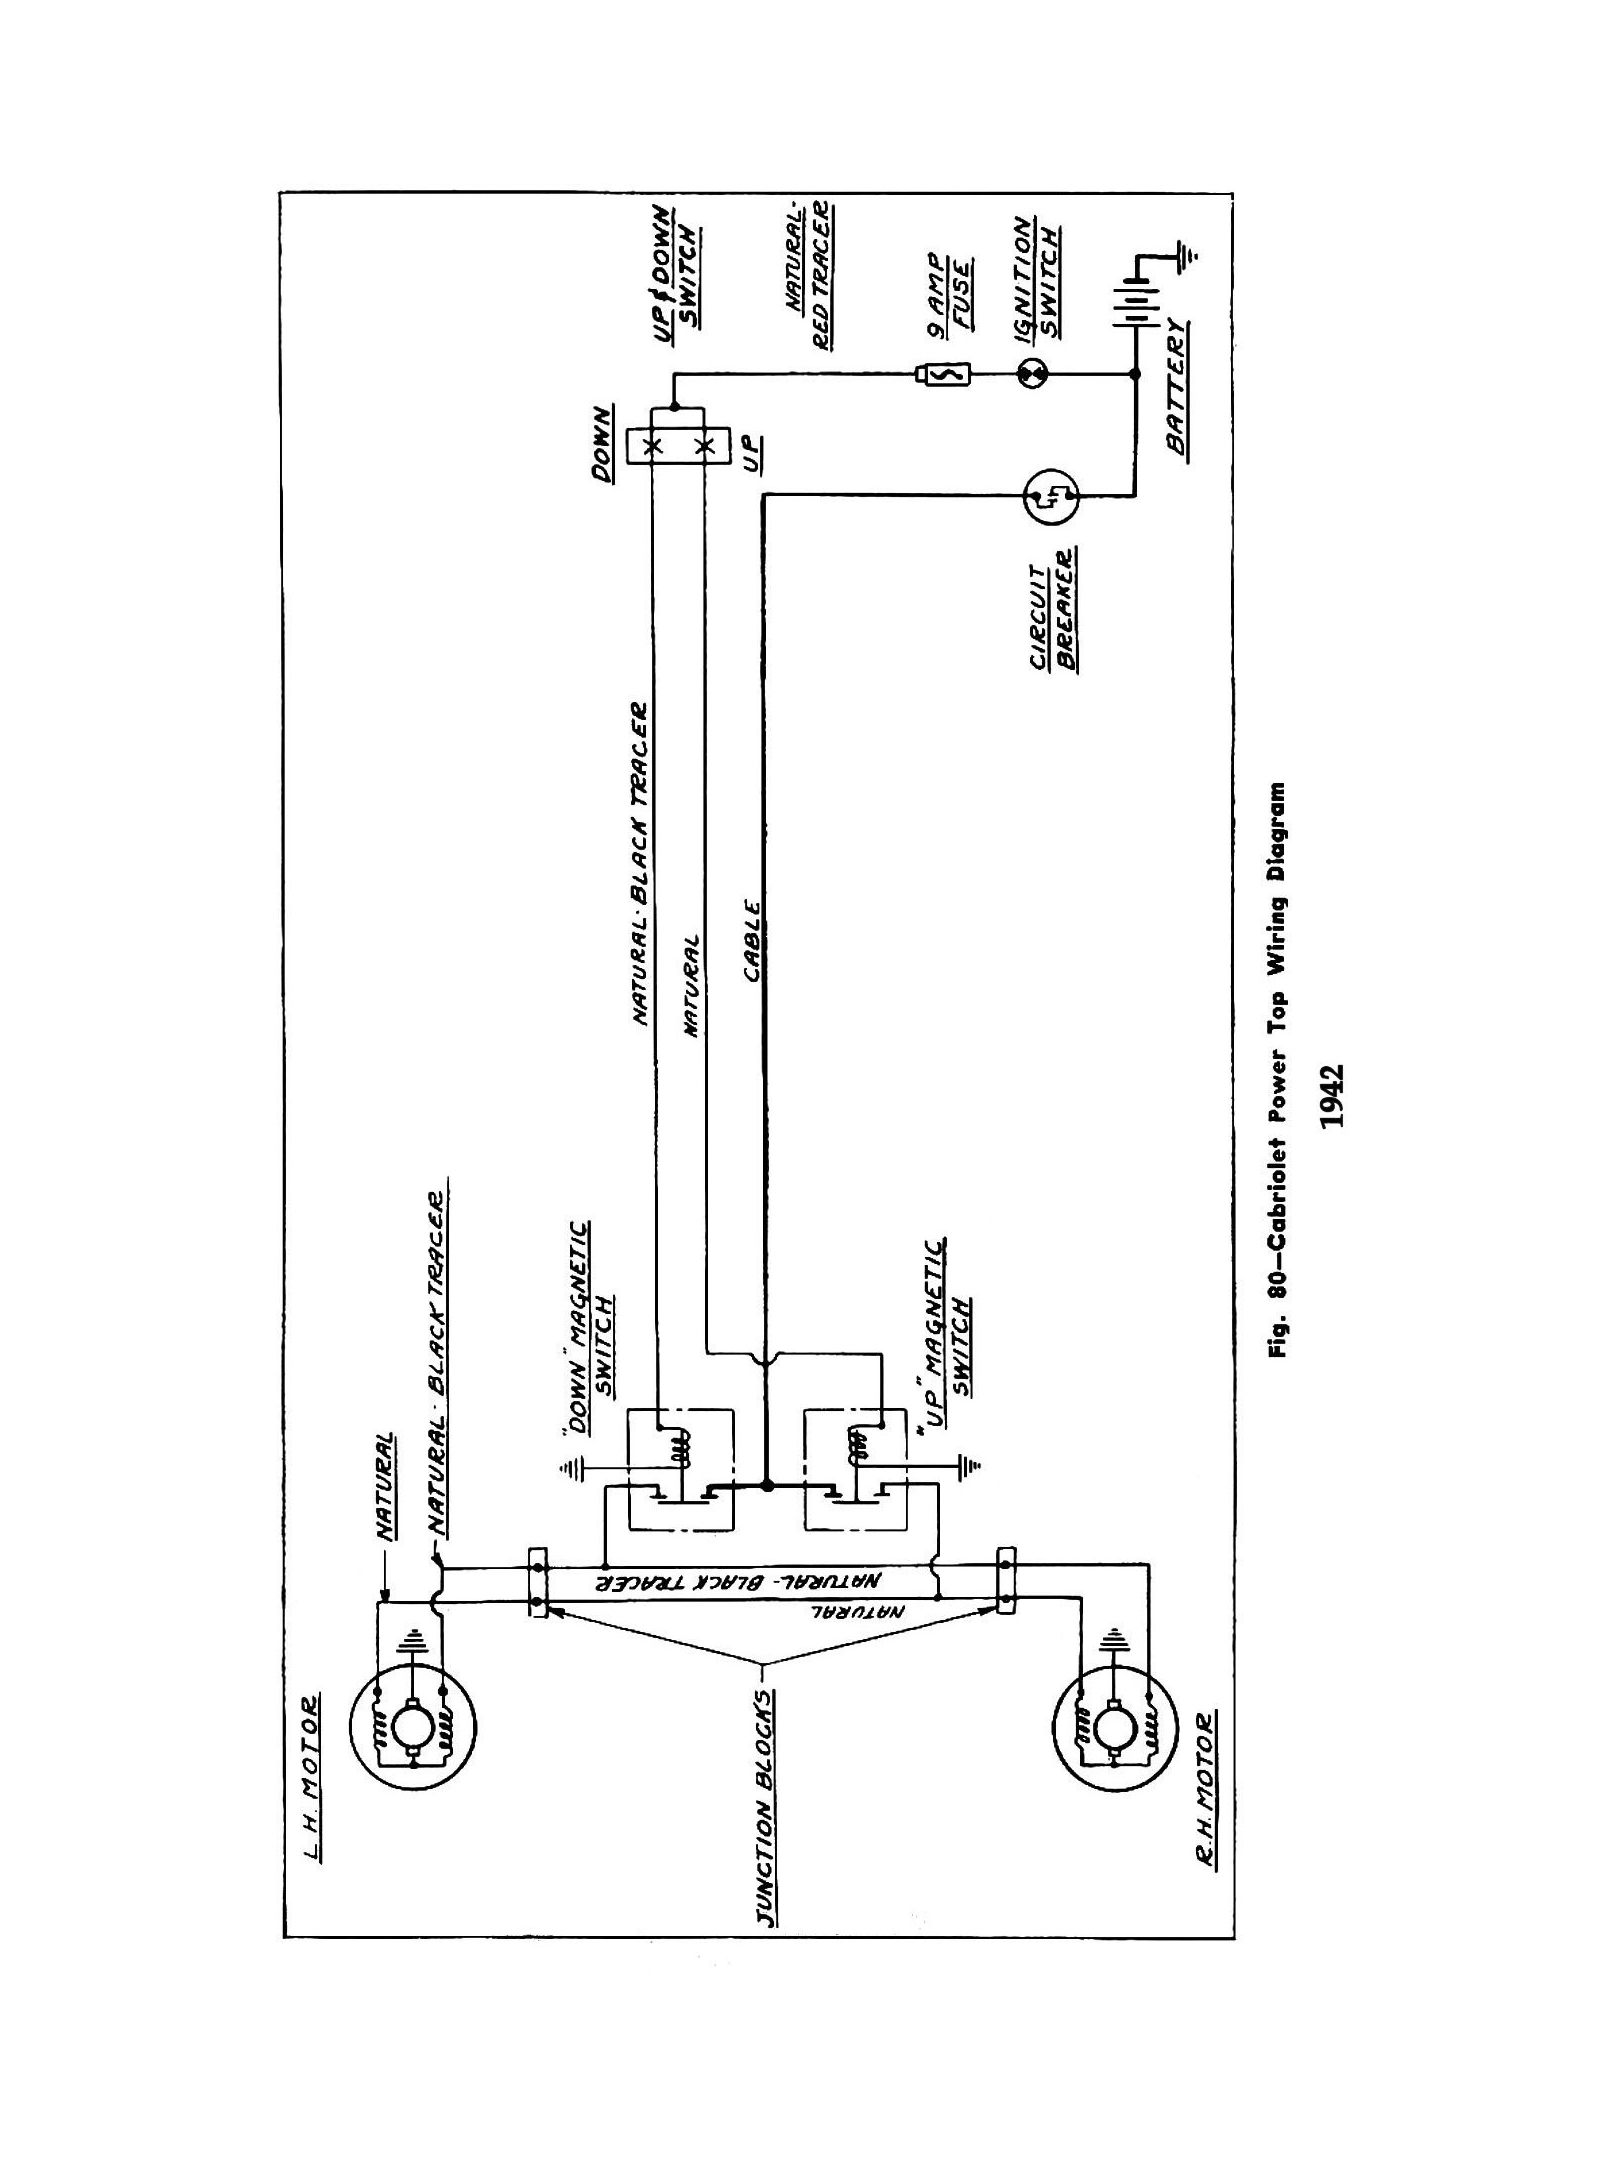 Wiring Diagram For A 1937 Chevy Truck Libraries Kia Sorento D4cb Engine Diagrams Diagrams1942 1942 Cabriolet Power Top